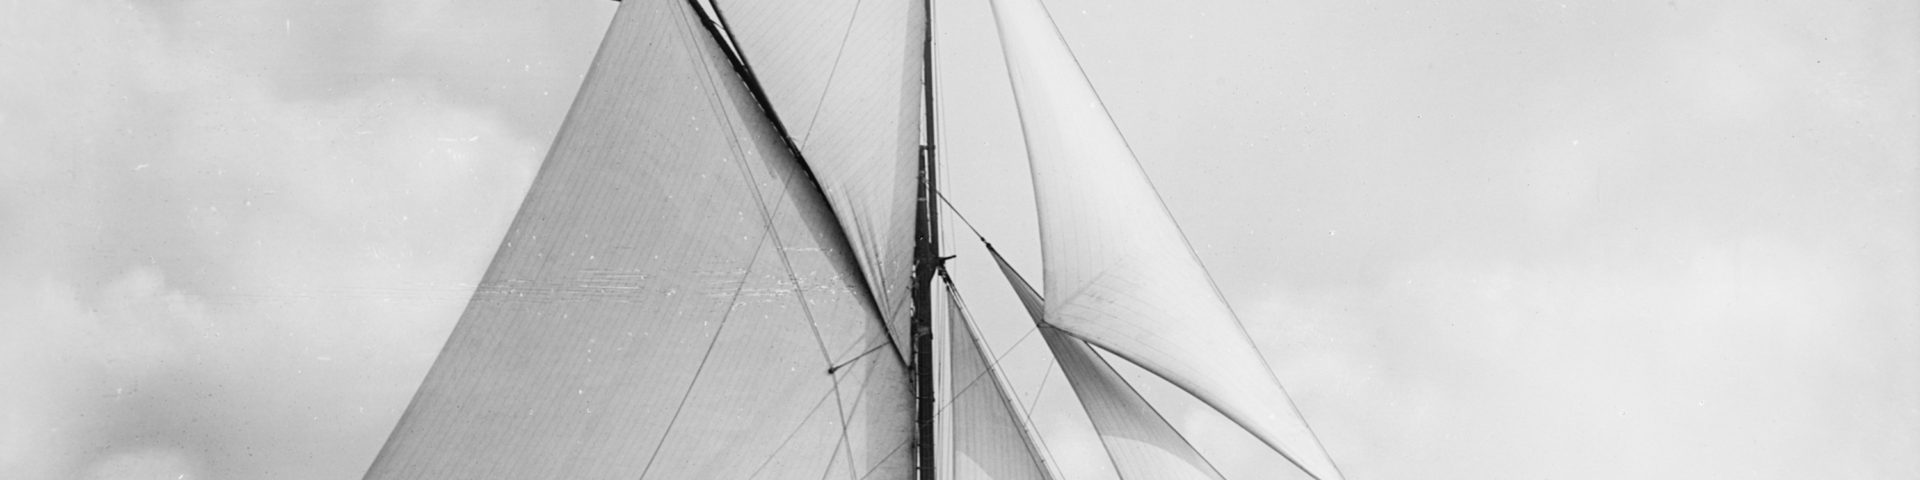 Lennox Watson designed cutter, 'Thistle', launched 1887.